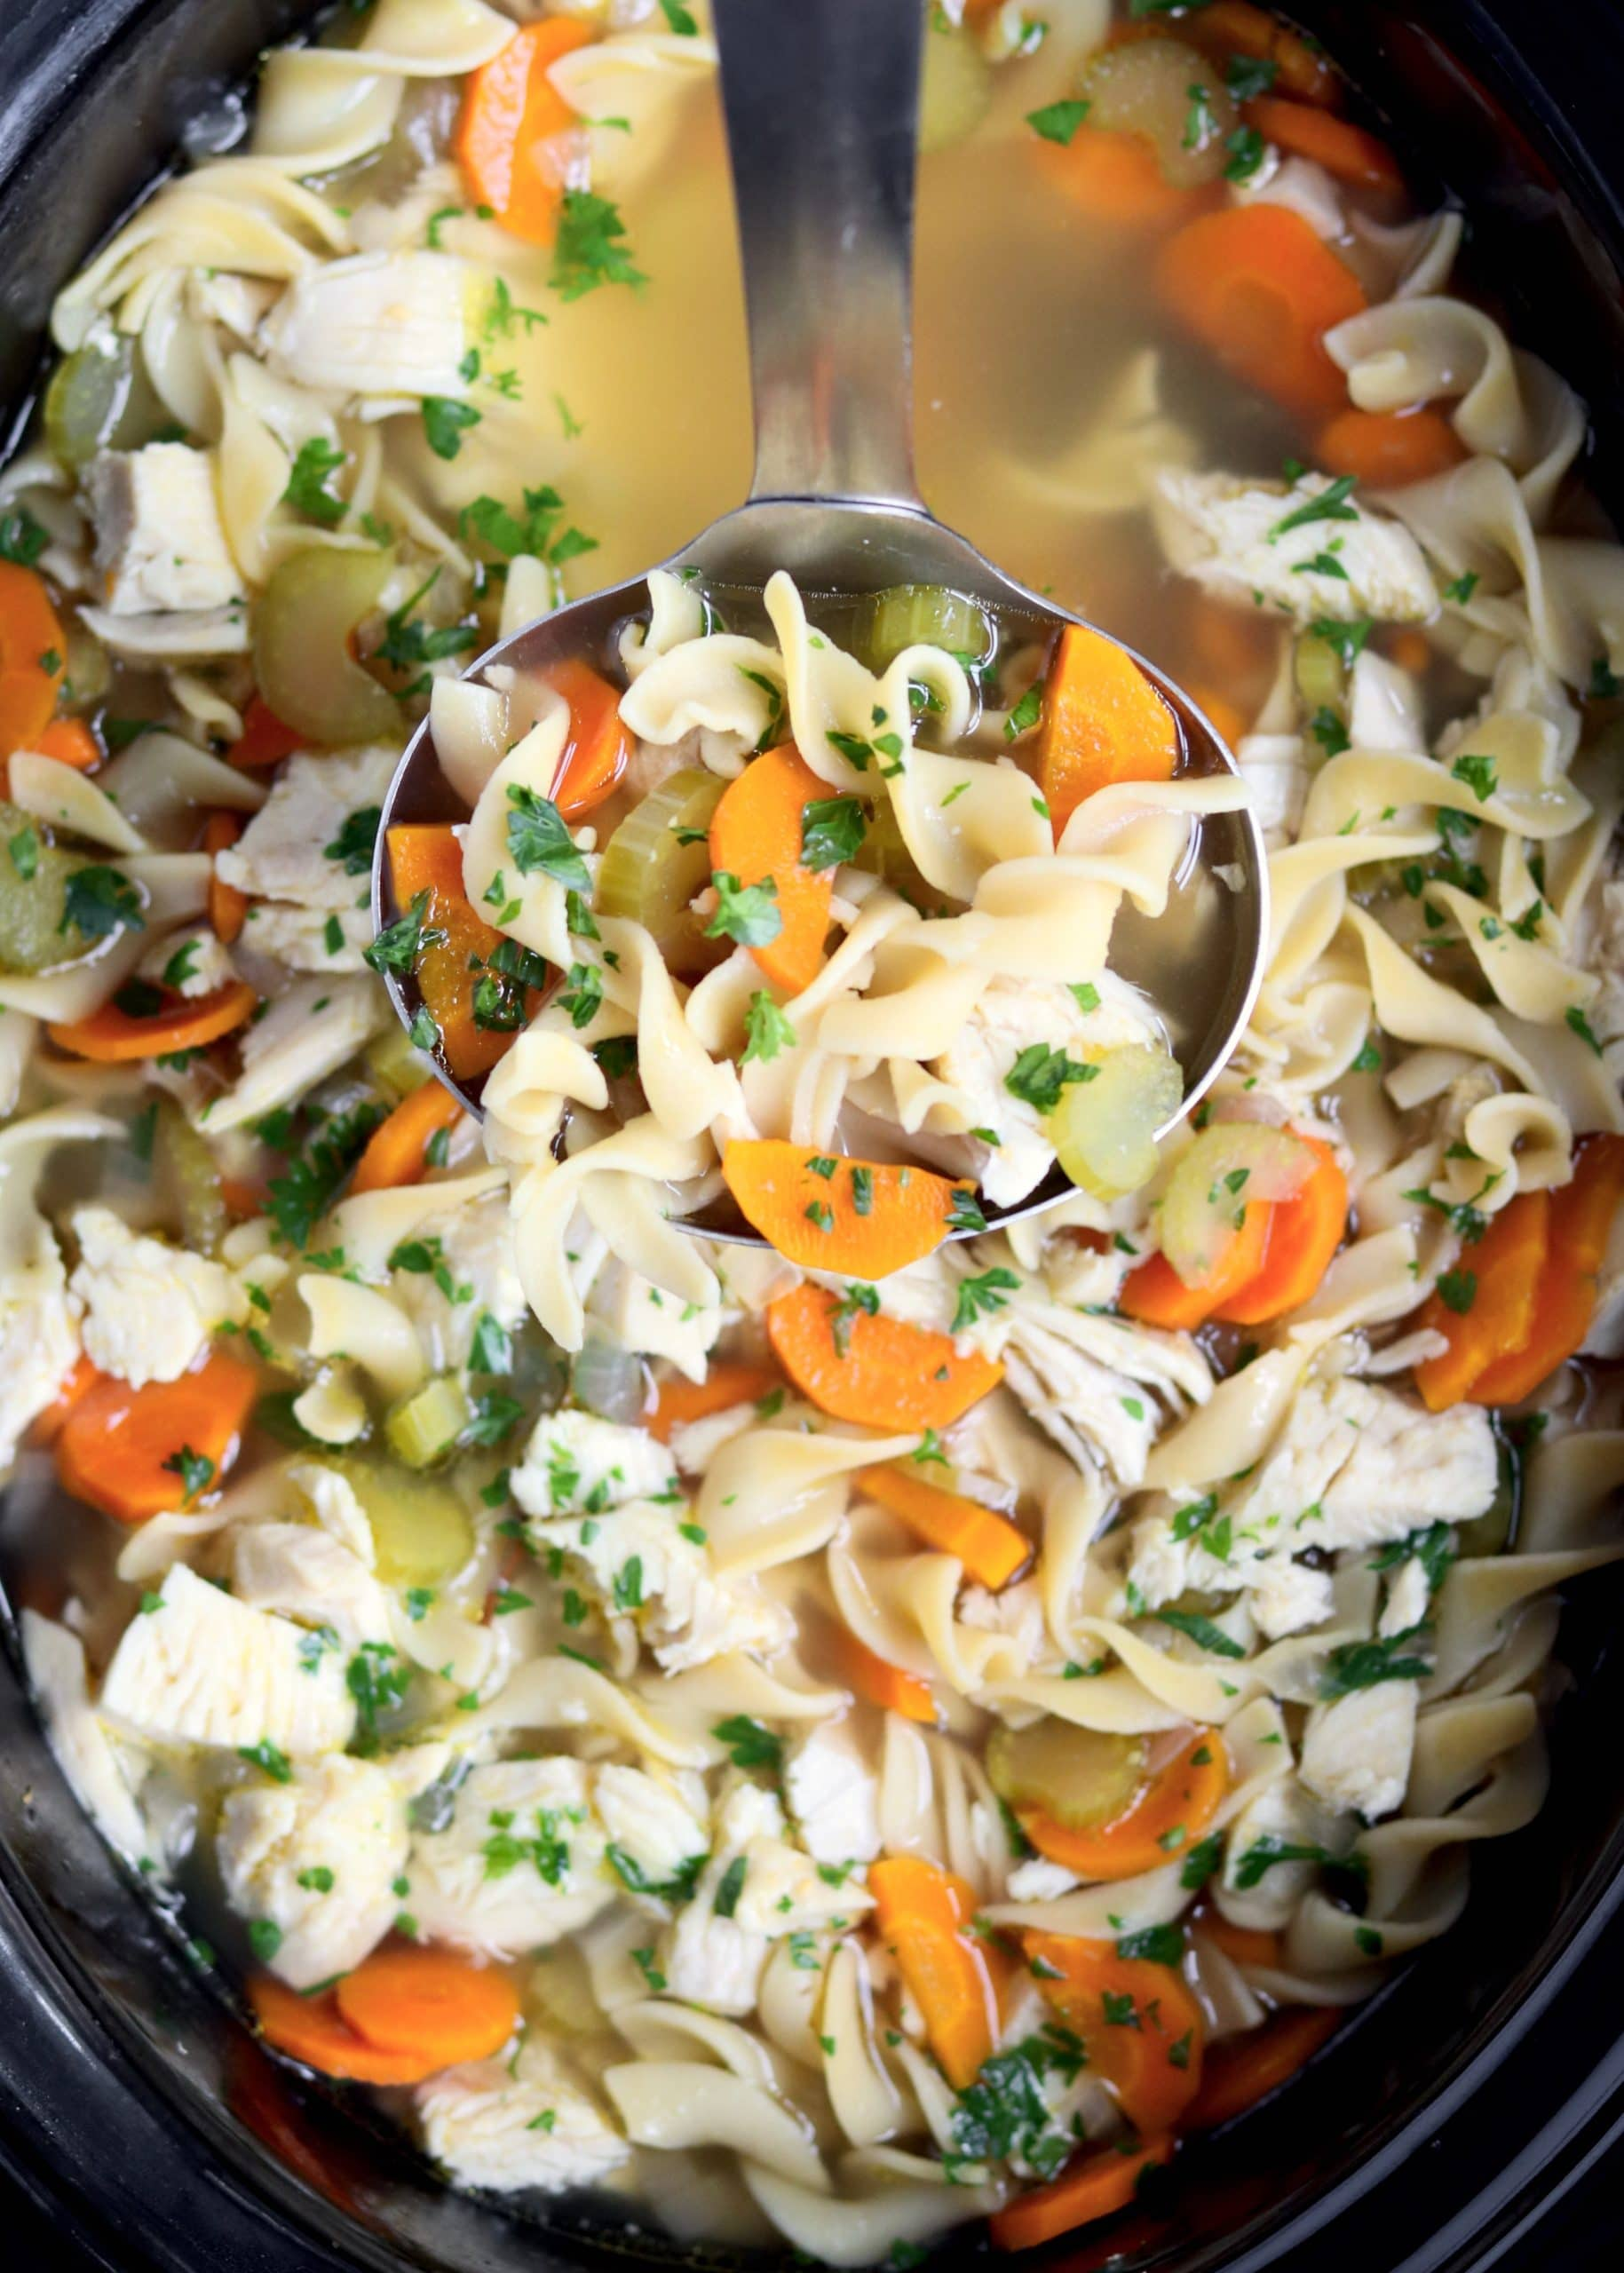 Ladle of chicken noodle soup in crockpot